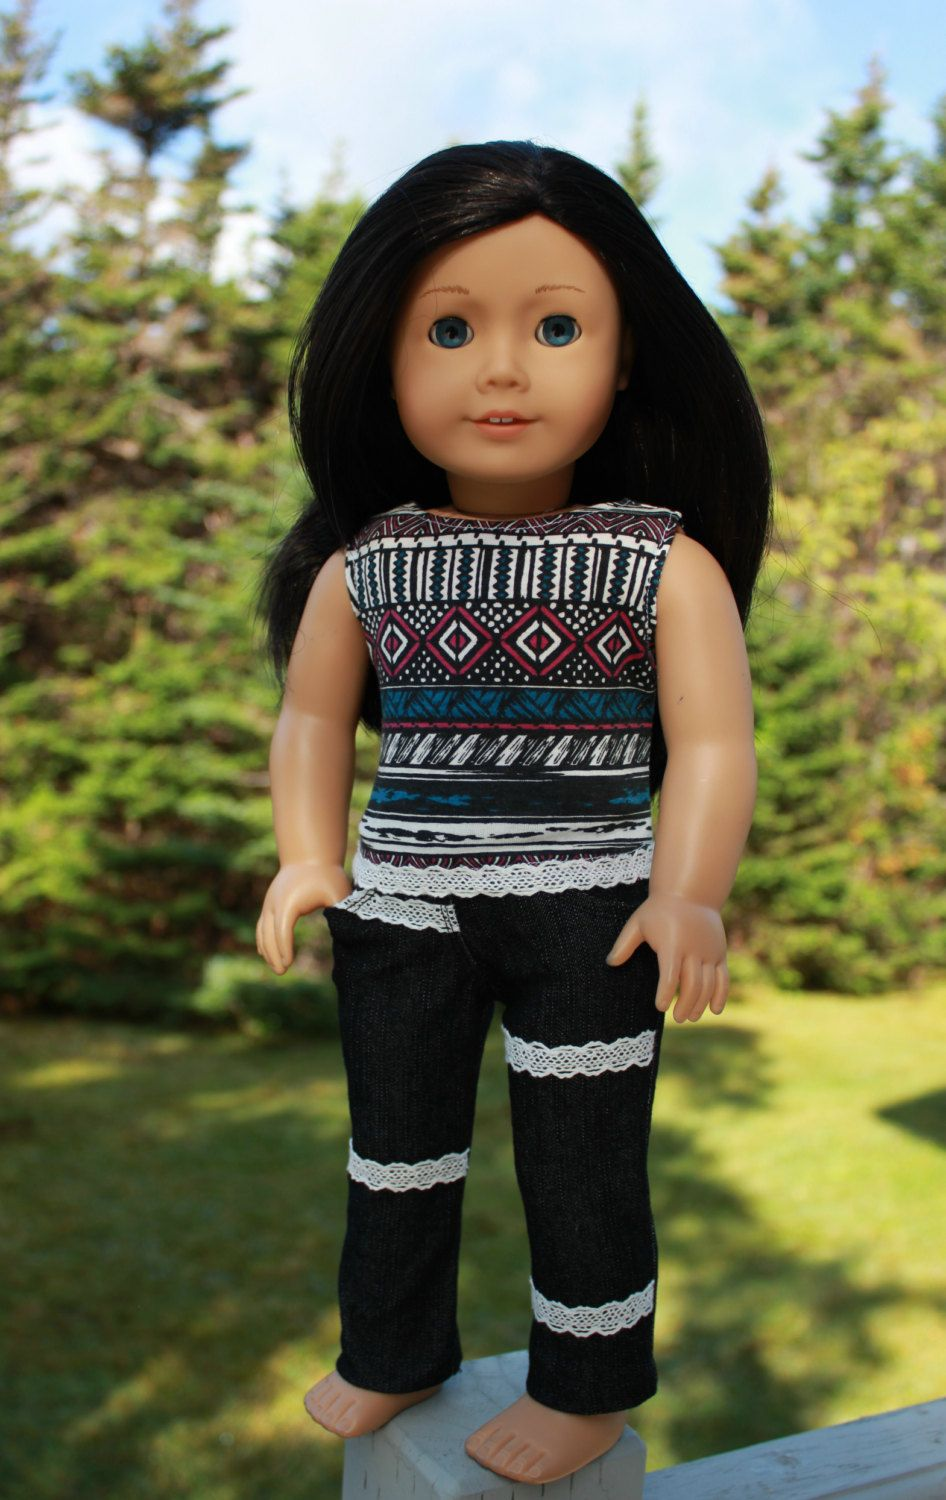 18 inch doll clothes, geometric print tank top, black skinny jeans with lace trim, american girl ,maplelea by UpbeatPetites on Etsy